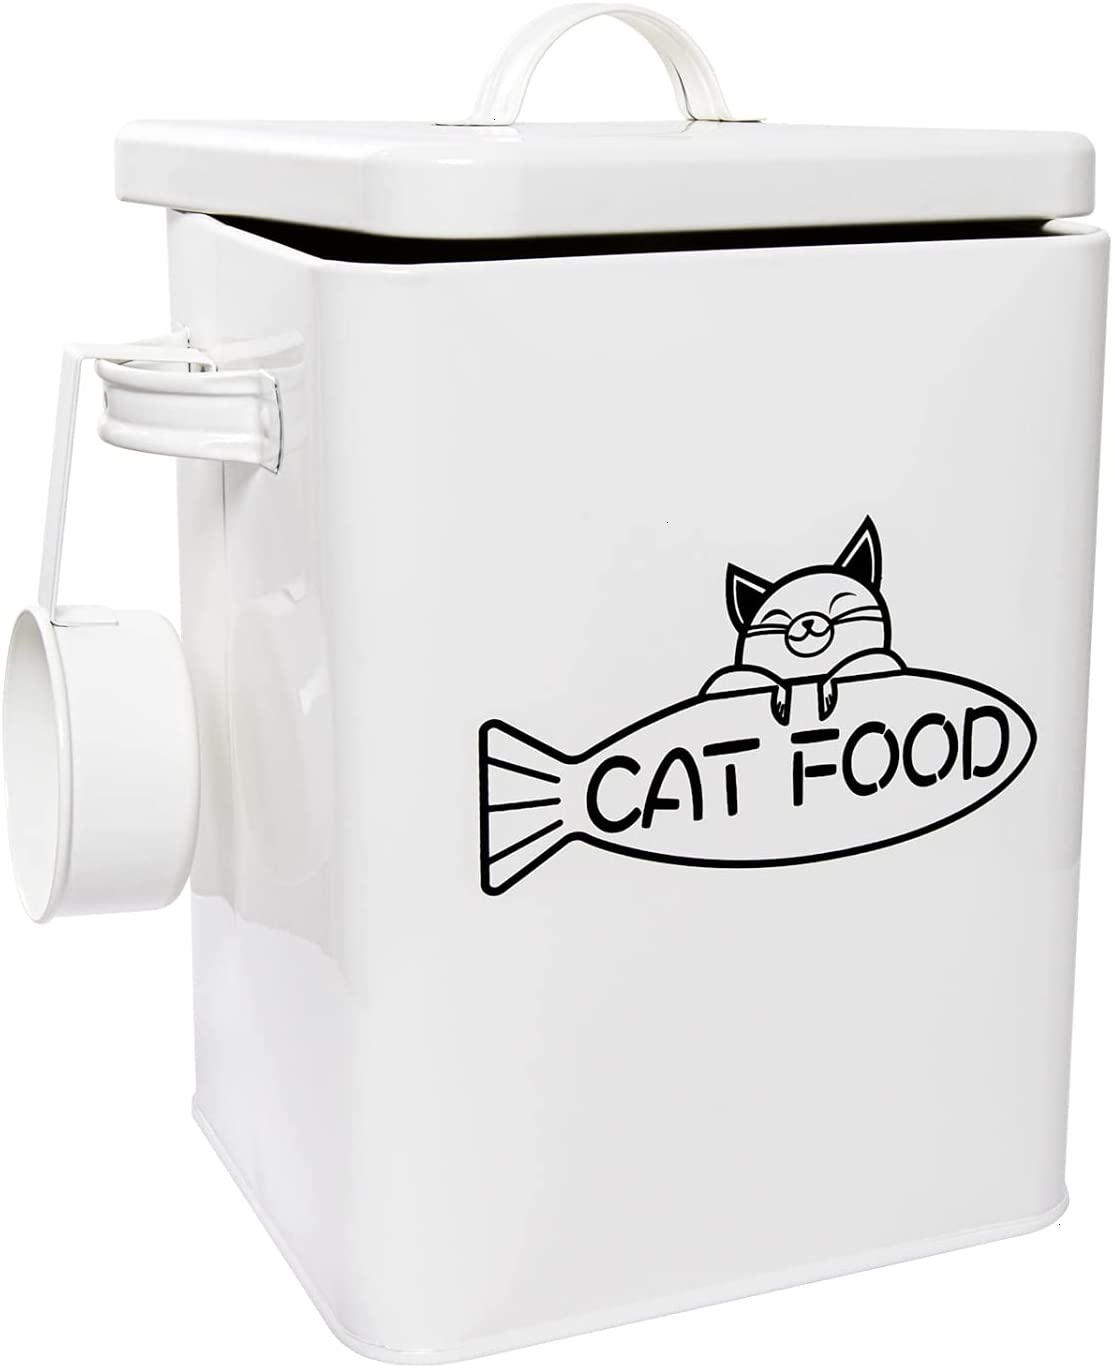 Vumdua Dog and Cat Food Limited time cheap sale Farmhouse Storage Pet Ranking TOP1 St Container